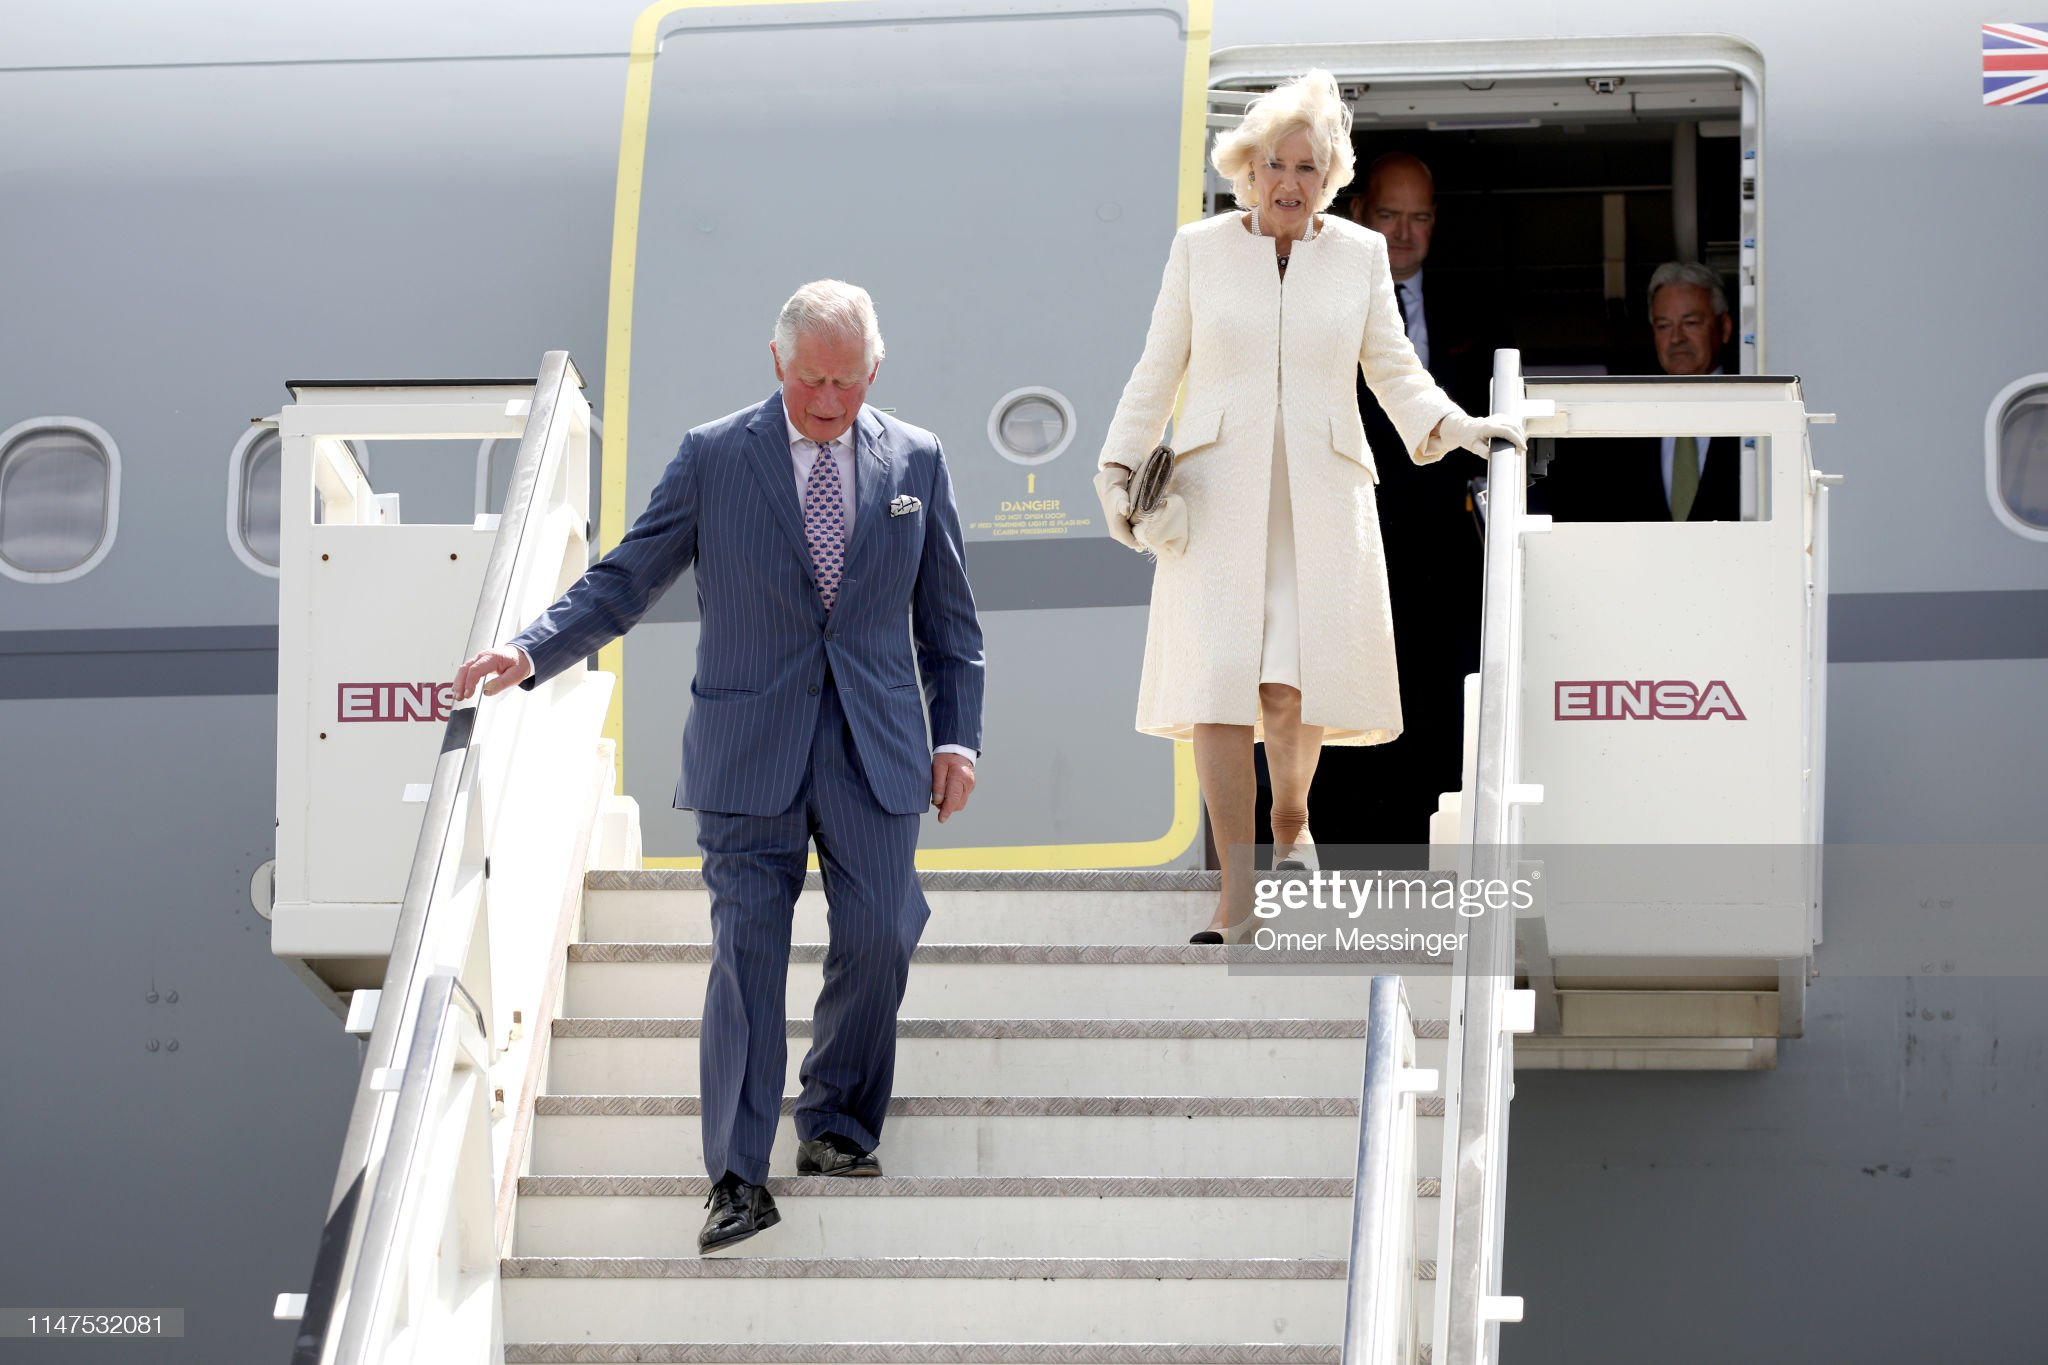 prince-charles-prince-of-wales-and-camilla-duchess-of-cornwall-arrive-picture-id1147532081